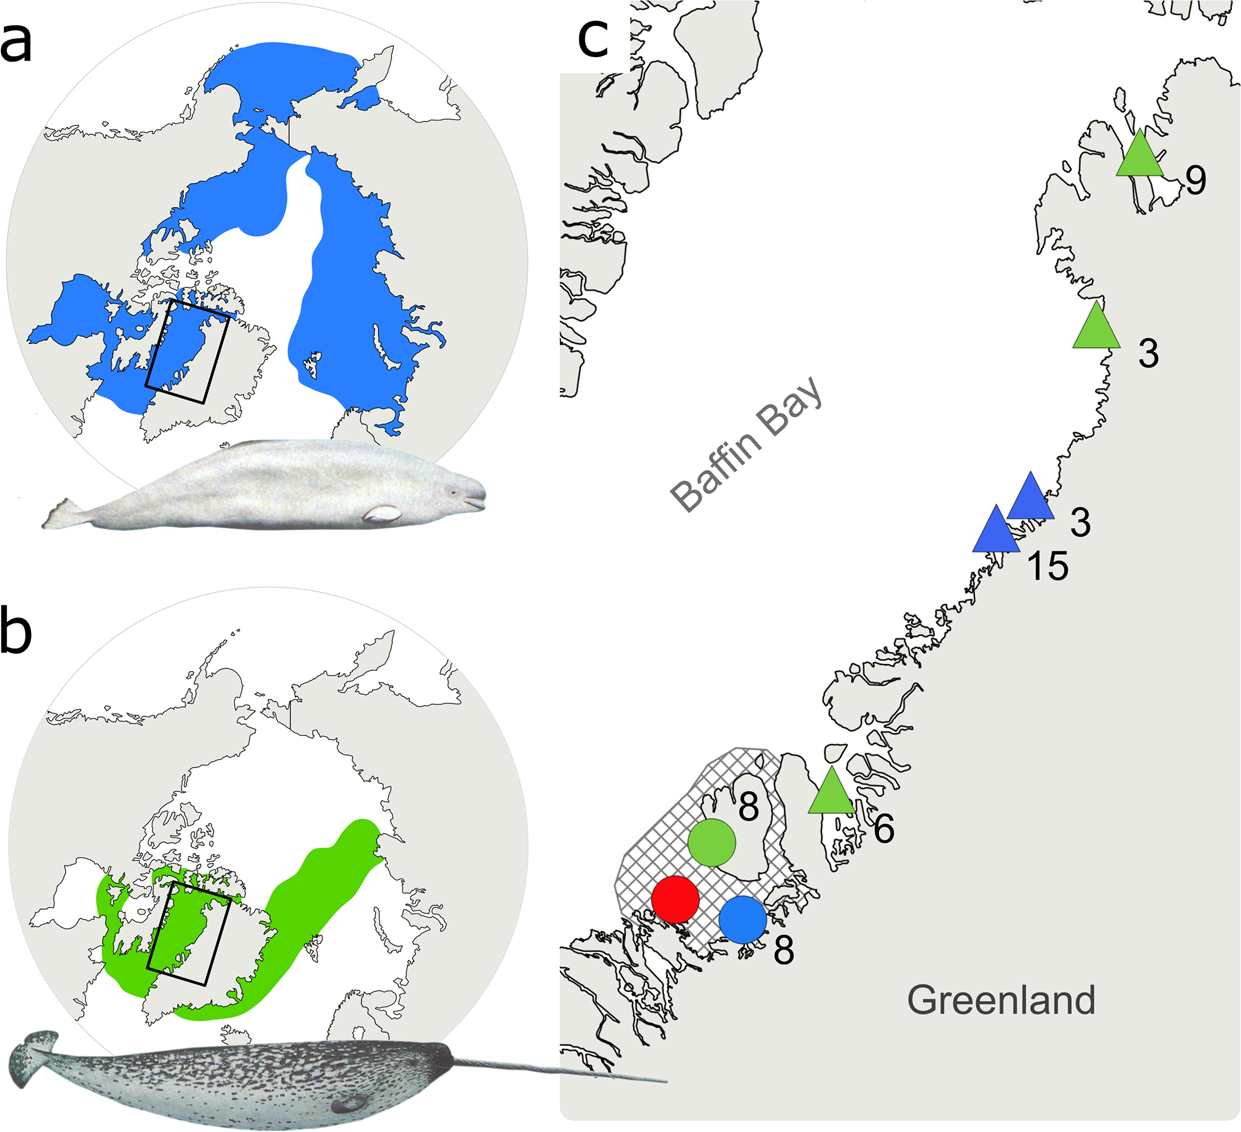 Hybridization between two high Arctic cetaceans confirmed by genomic.